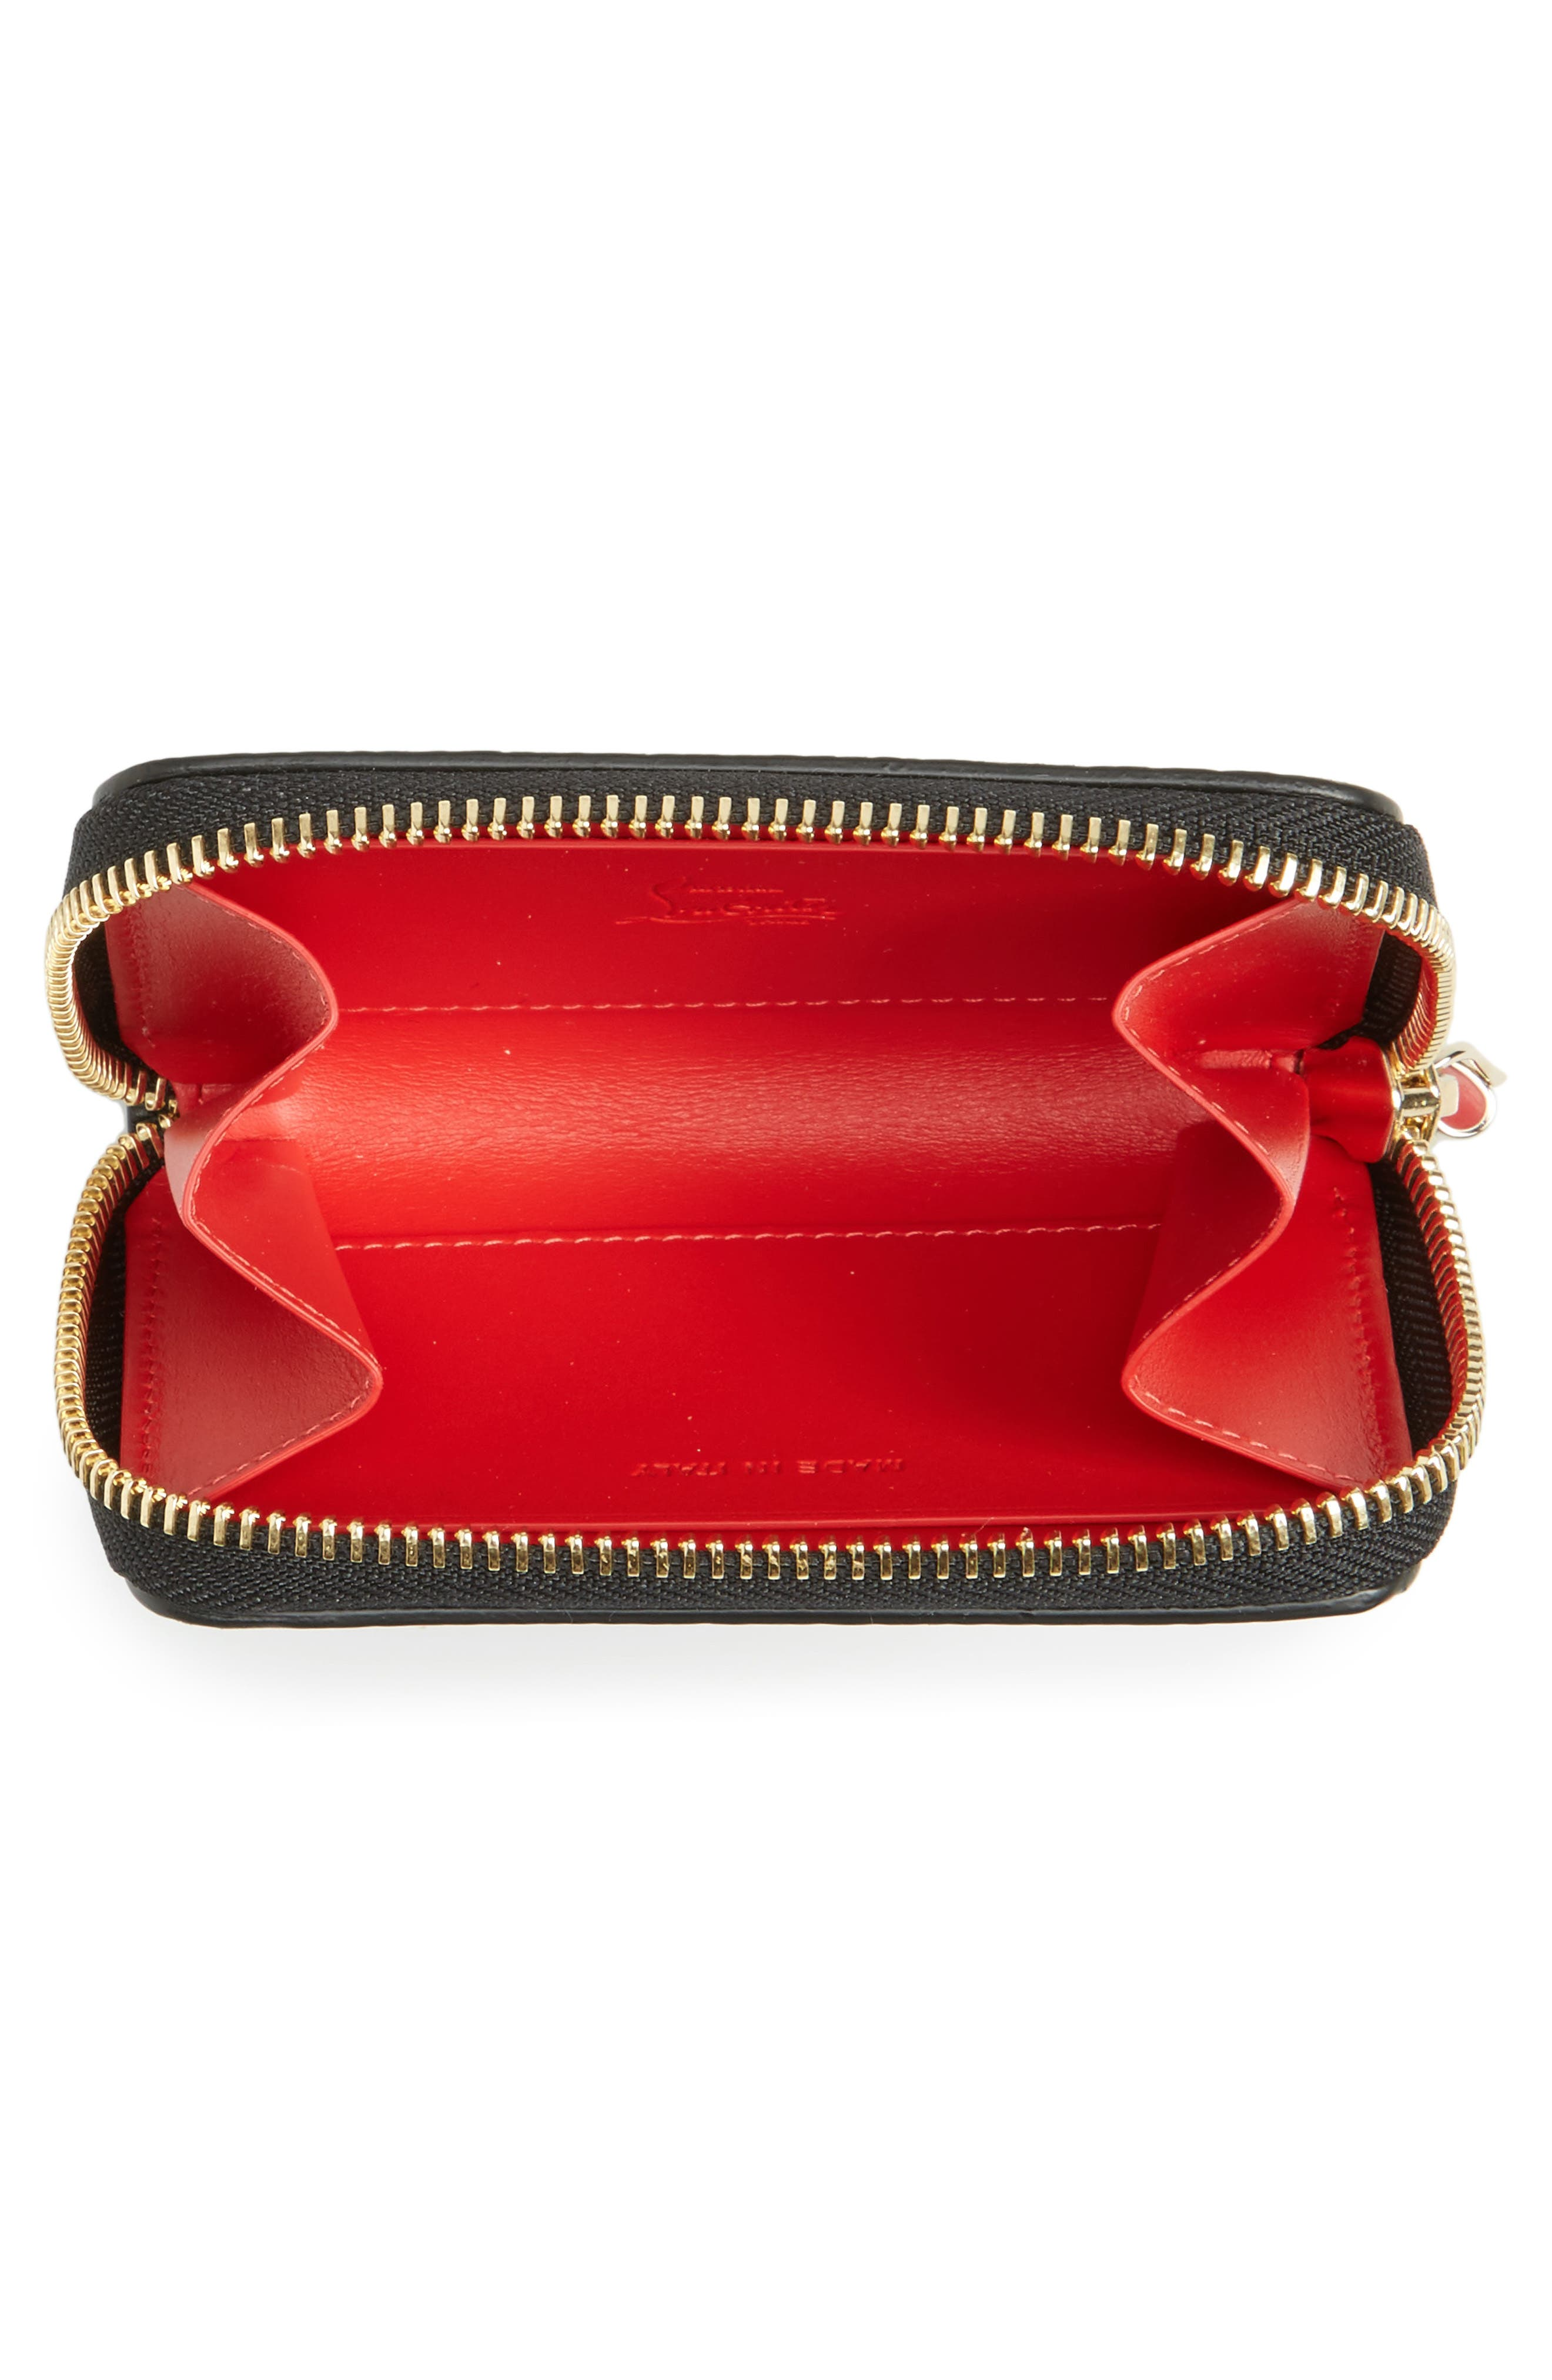 CHRISTIAN LOUBOUTIN, Panettone Leather Coin Purse, Alternate thumbnail 2, color, BLACK/ GOLD